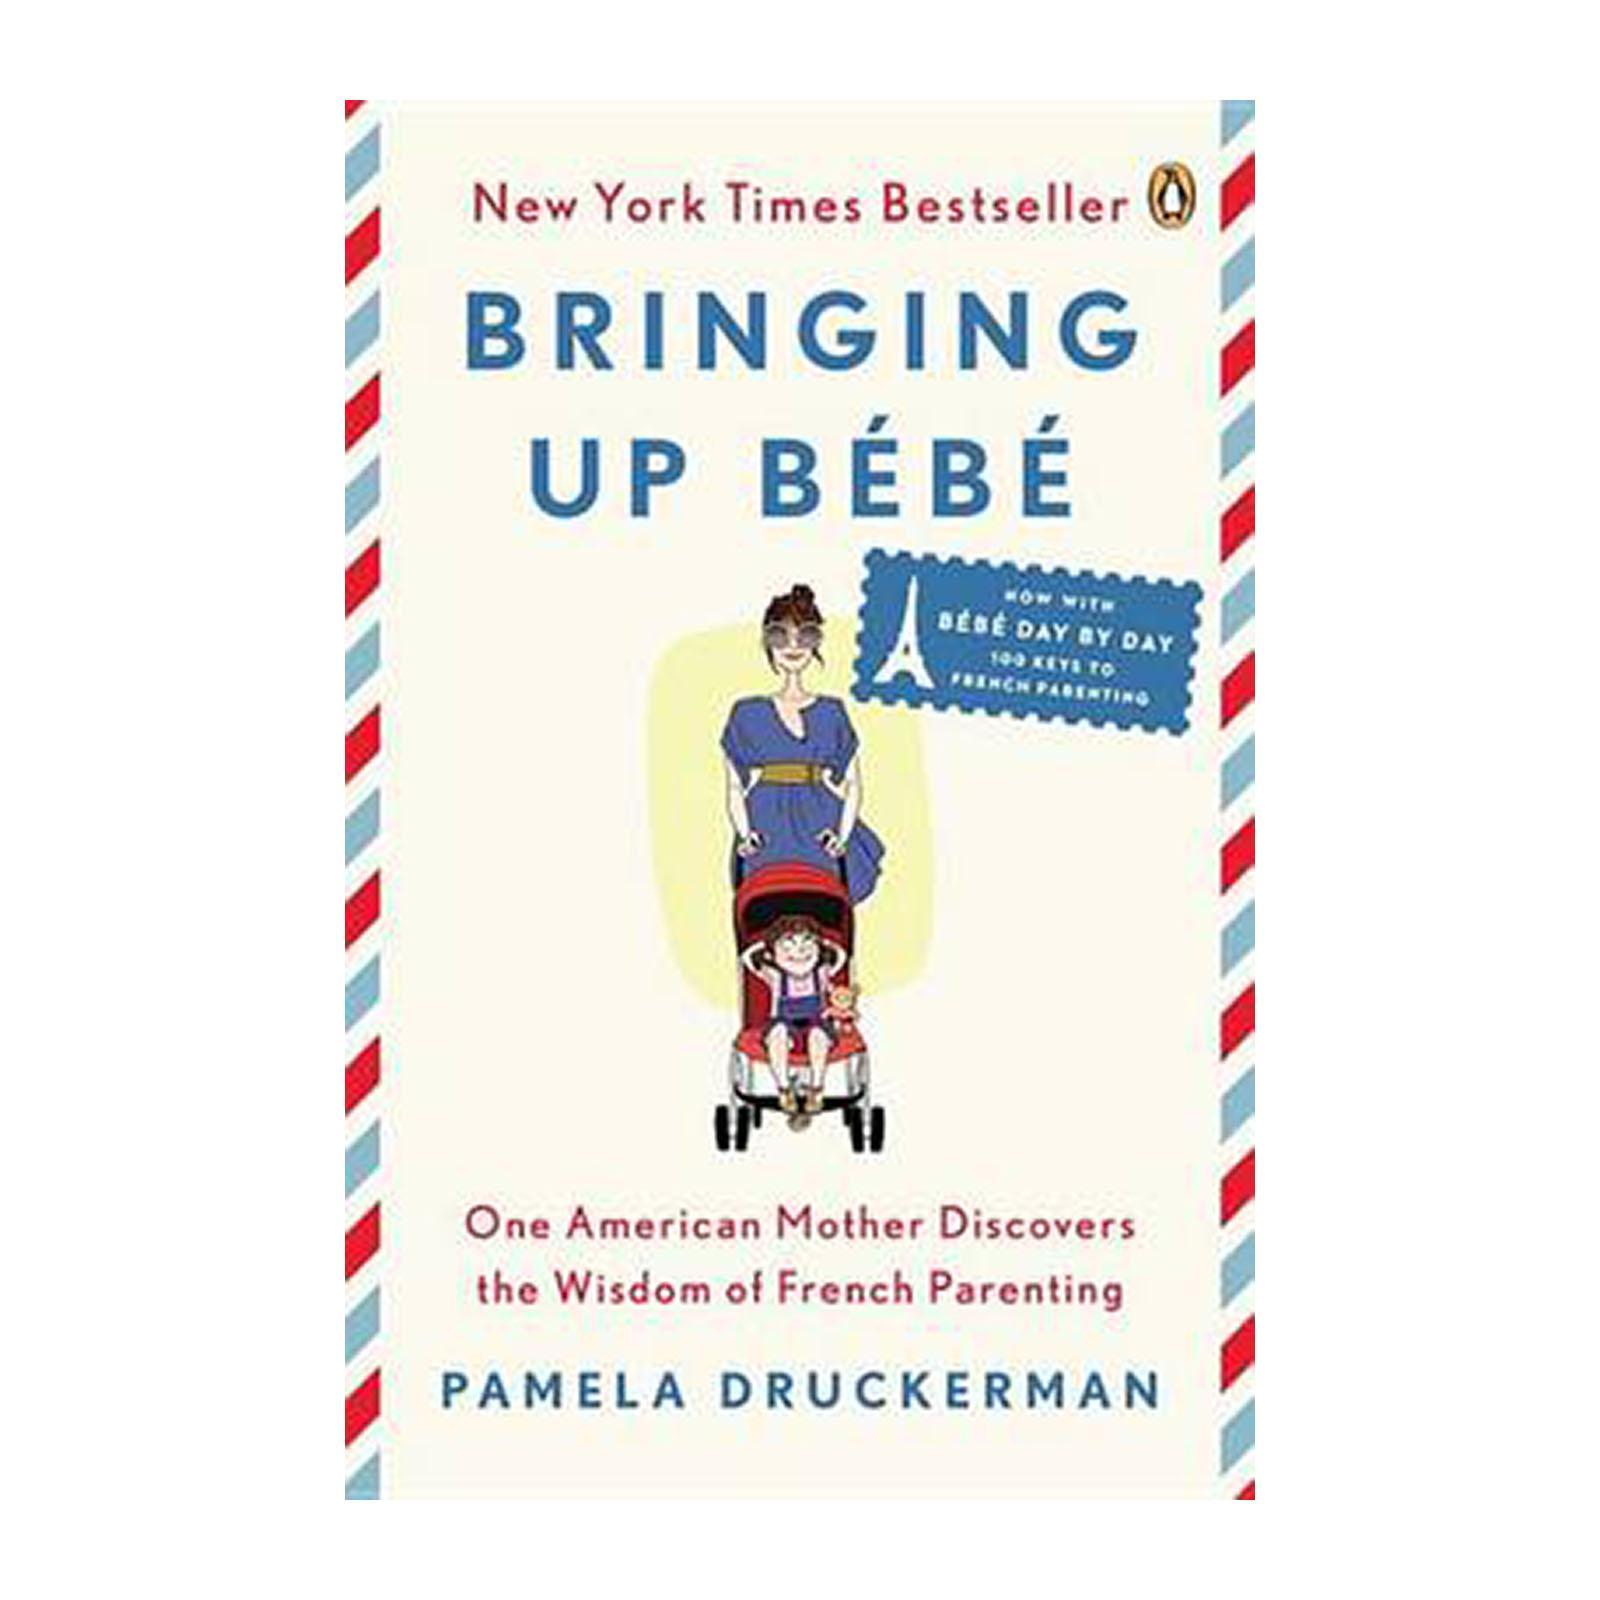 Bringing Up Bebe: One American Mother Discovers The Wisdom Of French Parenting (Now With Bebe Day By Day: 100 Keys To French Parenting) (Paperback)